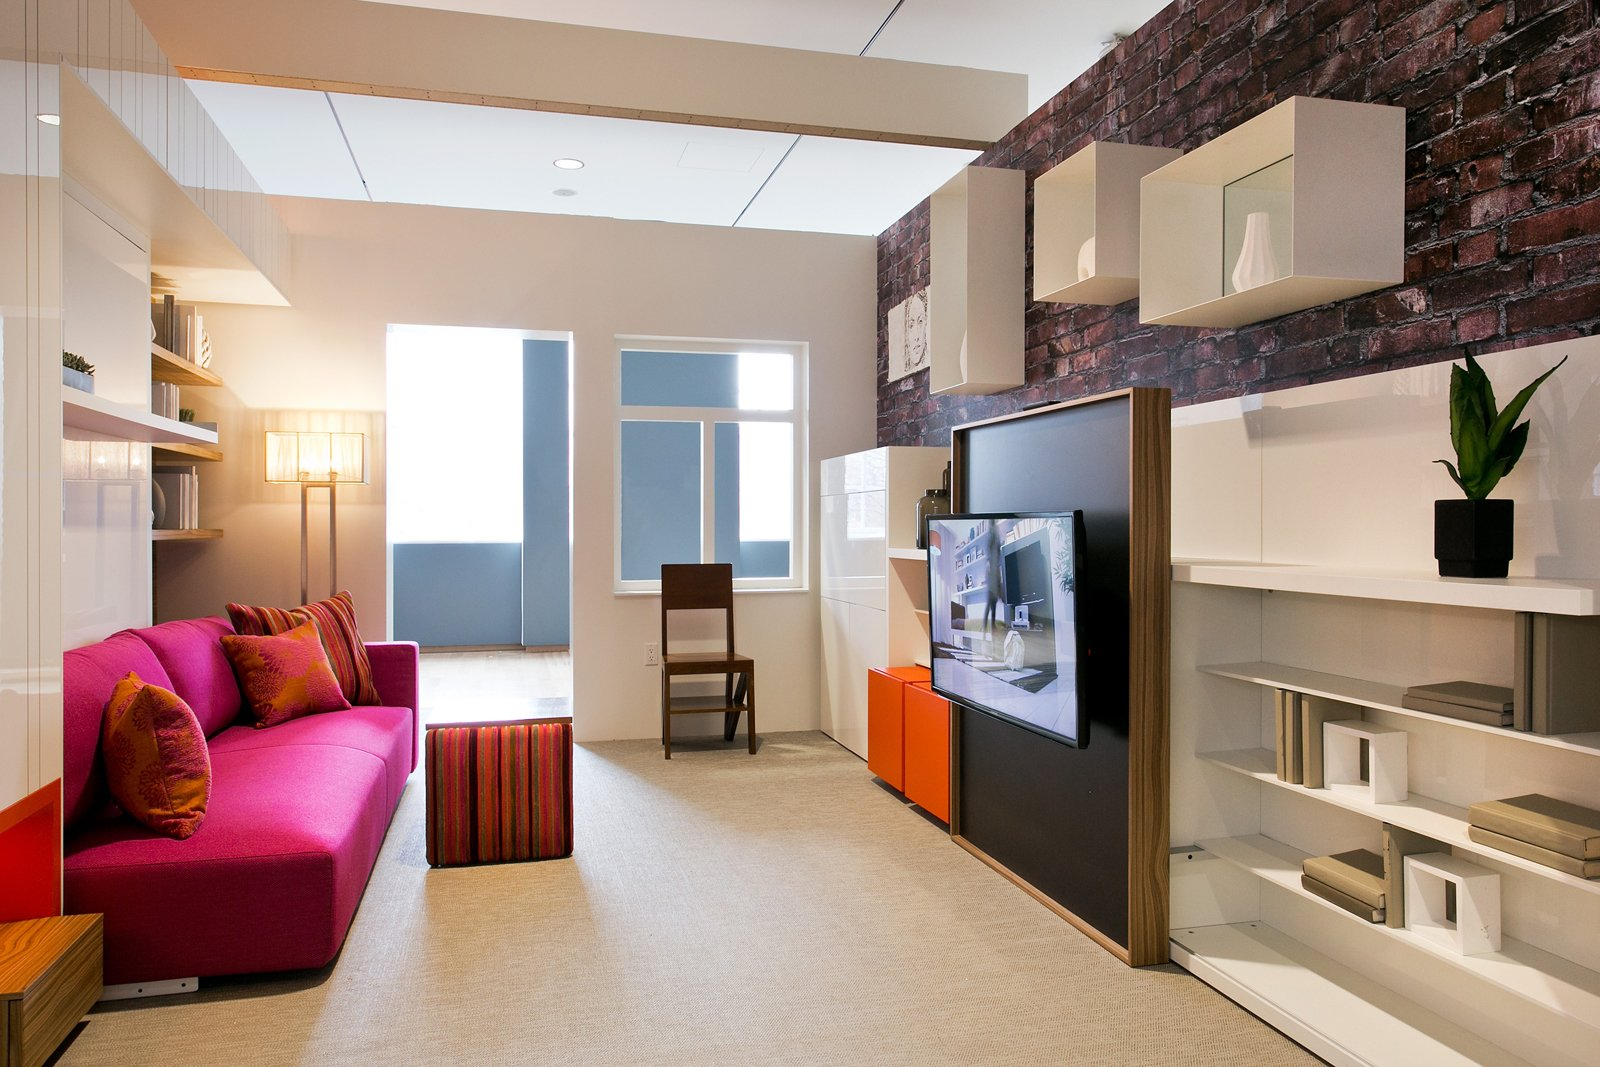 The use of wall space is maximized to keep clutter from the floor and allow for an open feeling. Micro-unit LaunchPad. Clei s.r.l/Resource Furniture; Designed by Pierluigi Colombo and architecture by Amie Gross Architects. Photography by John Halpern. Courtesy of the Museum of the City of New York  Small Spaces from Making Room